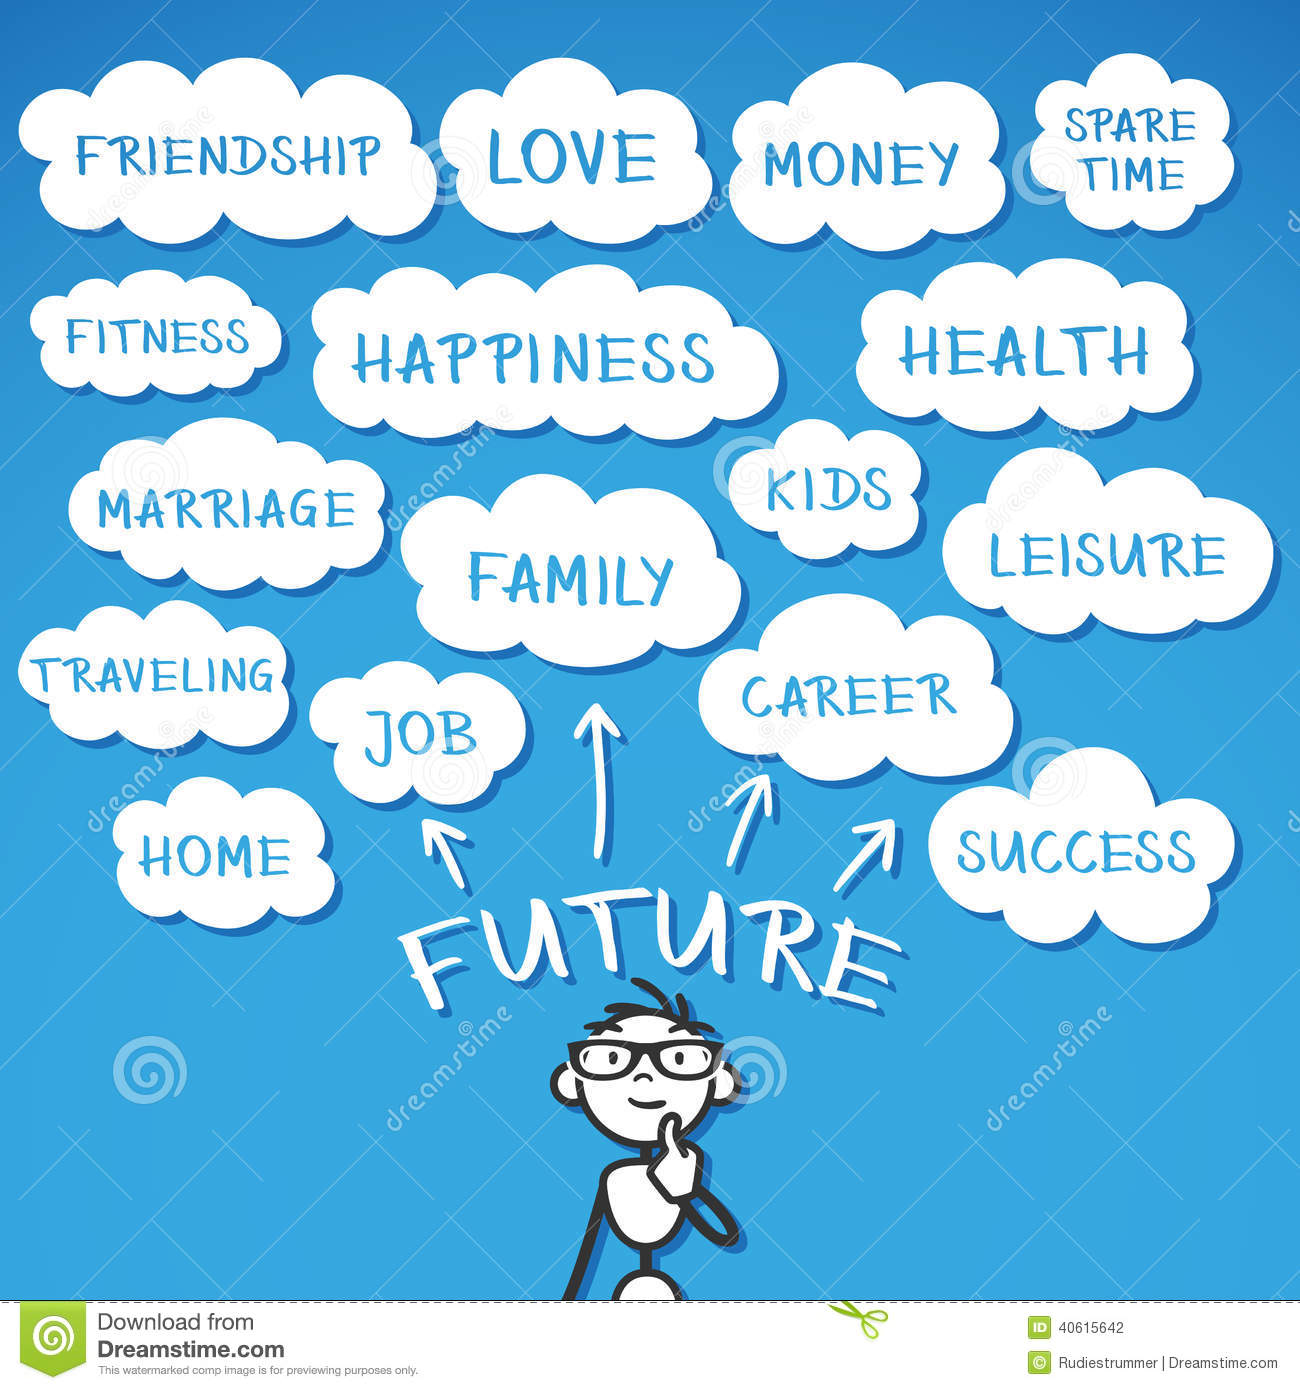 hopes for the future He hopes that in the future he may grow to become a more mature and understanding person that he may be able to help others with whatever they may need that he may be able to build more relationships like he already has in order to make life more bearable for others.